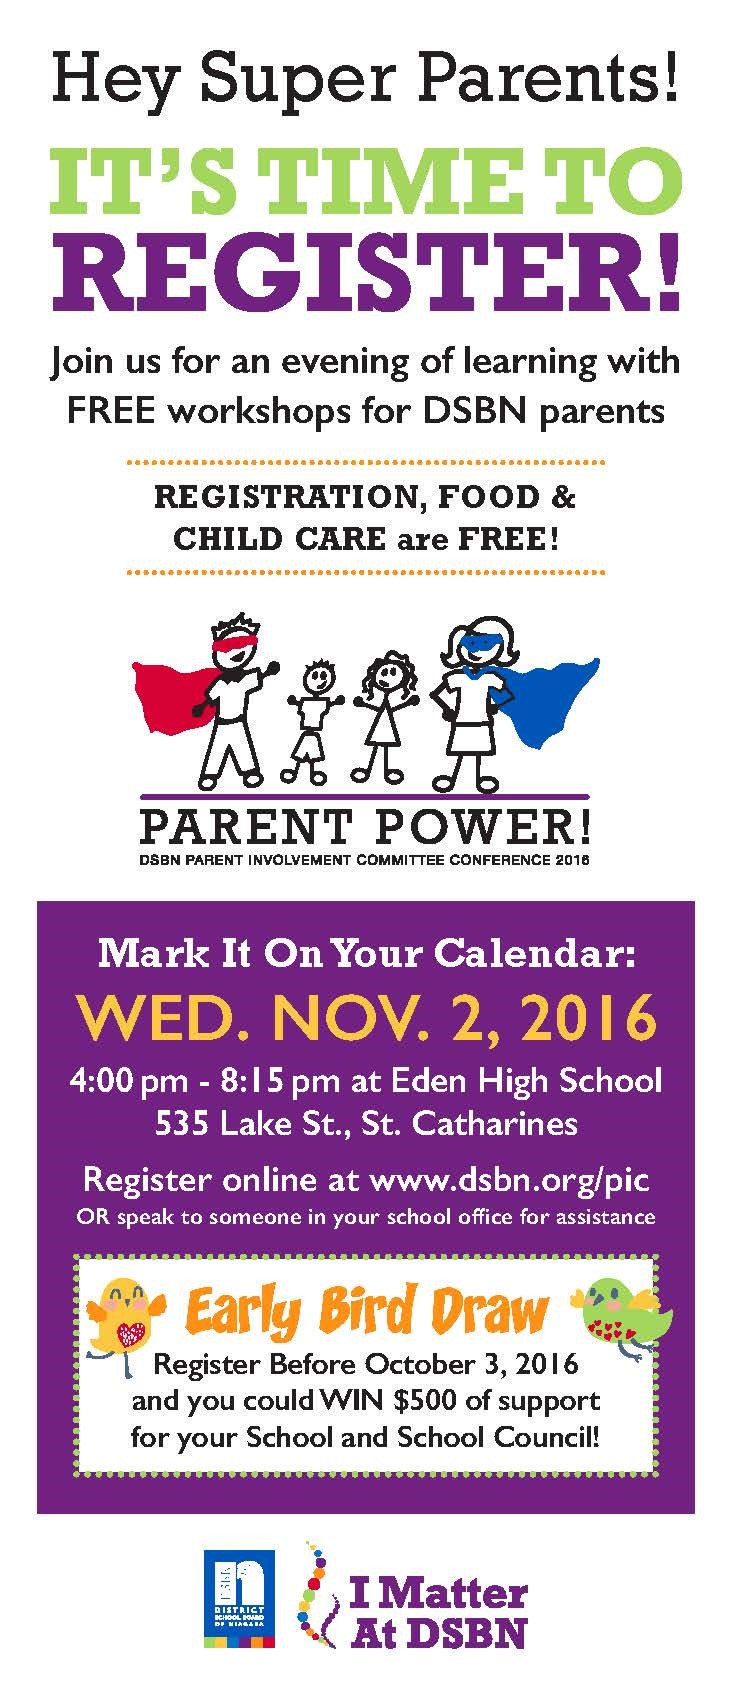 All DSBN Parents are invited to our FREE PIC on Nov 2 from 4:00 to 8:15 pm at Eden HS. Visit our DSBN website https://t.co/CmHILY4rK9 https://t.co/J56tQOaFlx